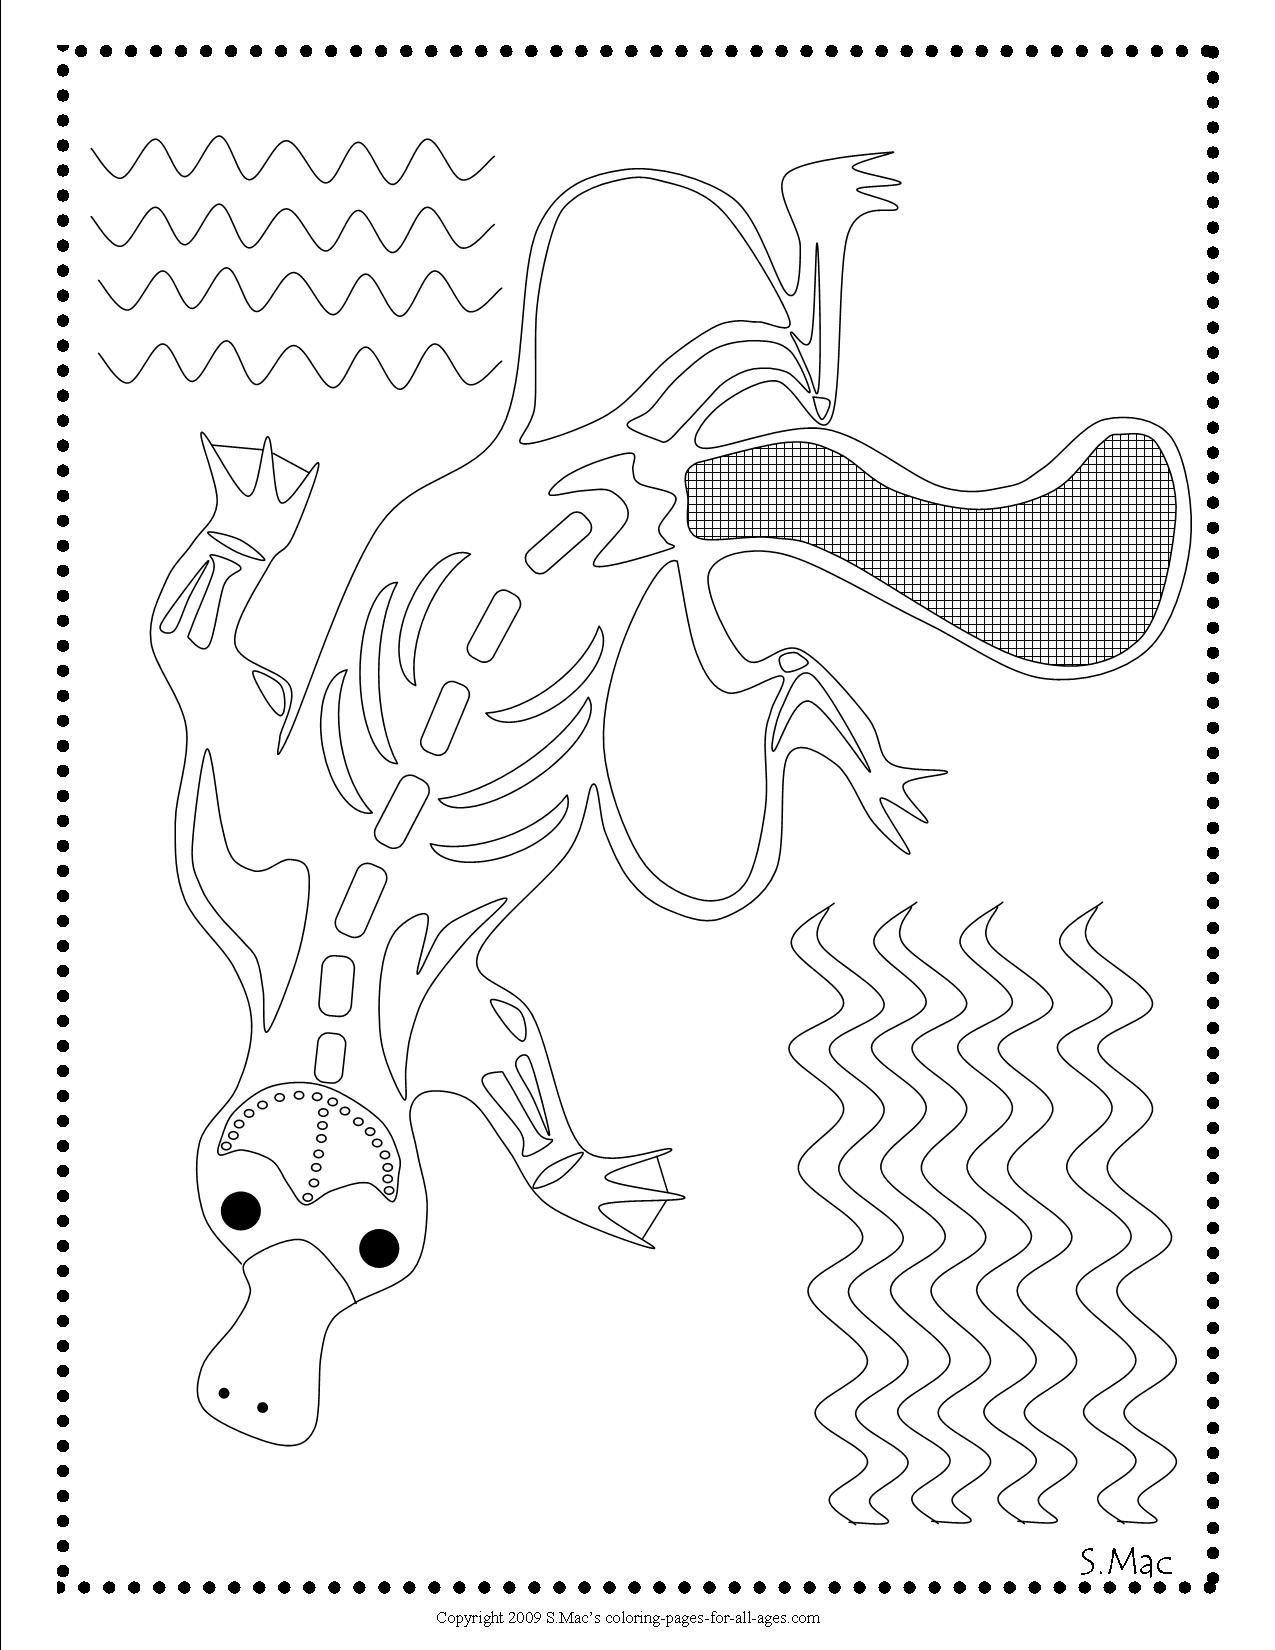 S mac coloring pages - X Ray Art Platypus Coloring Page By S Mac